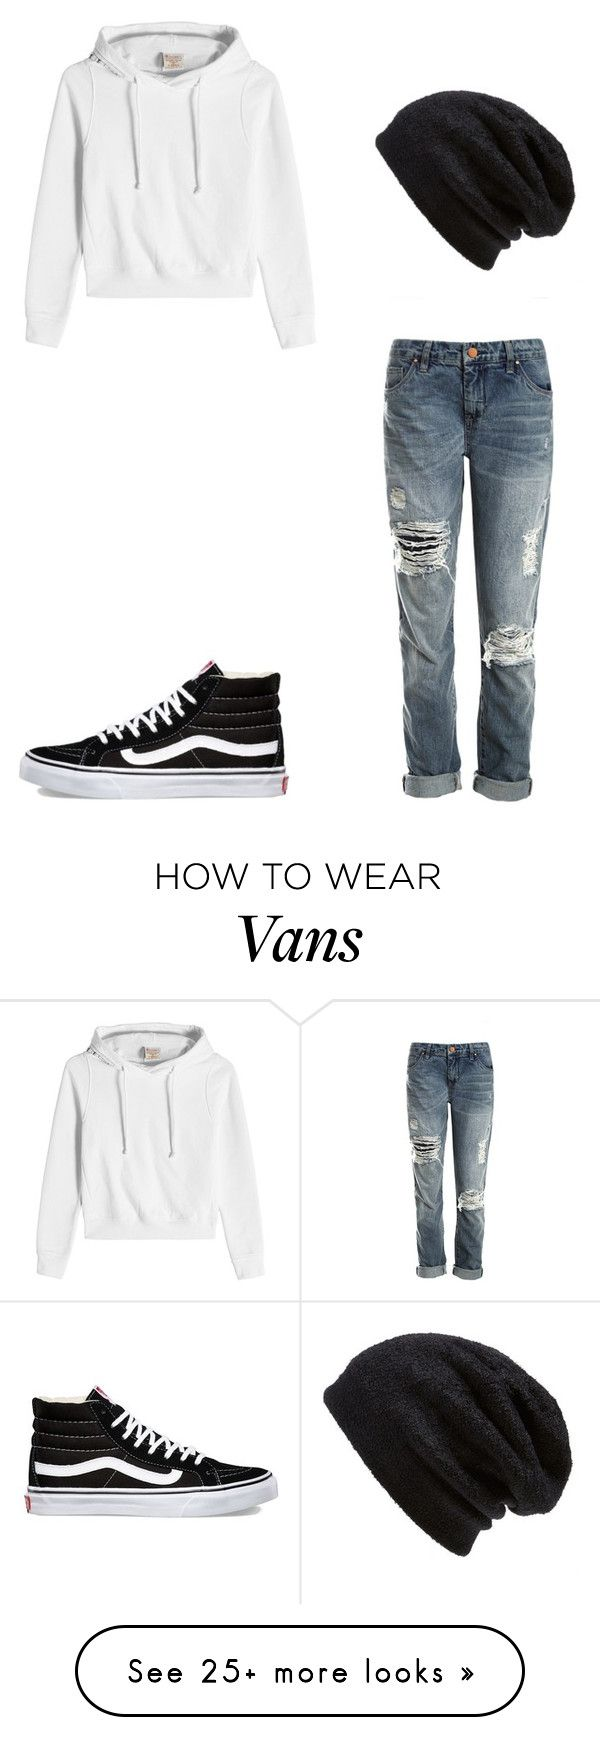 Best 25+ How to wear vans ideas on Pinterest | How to wear Cute teen outfits and Night wear